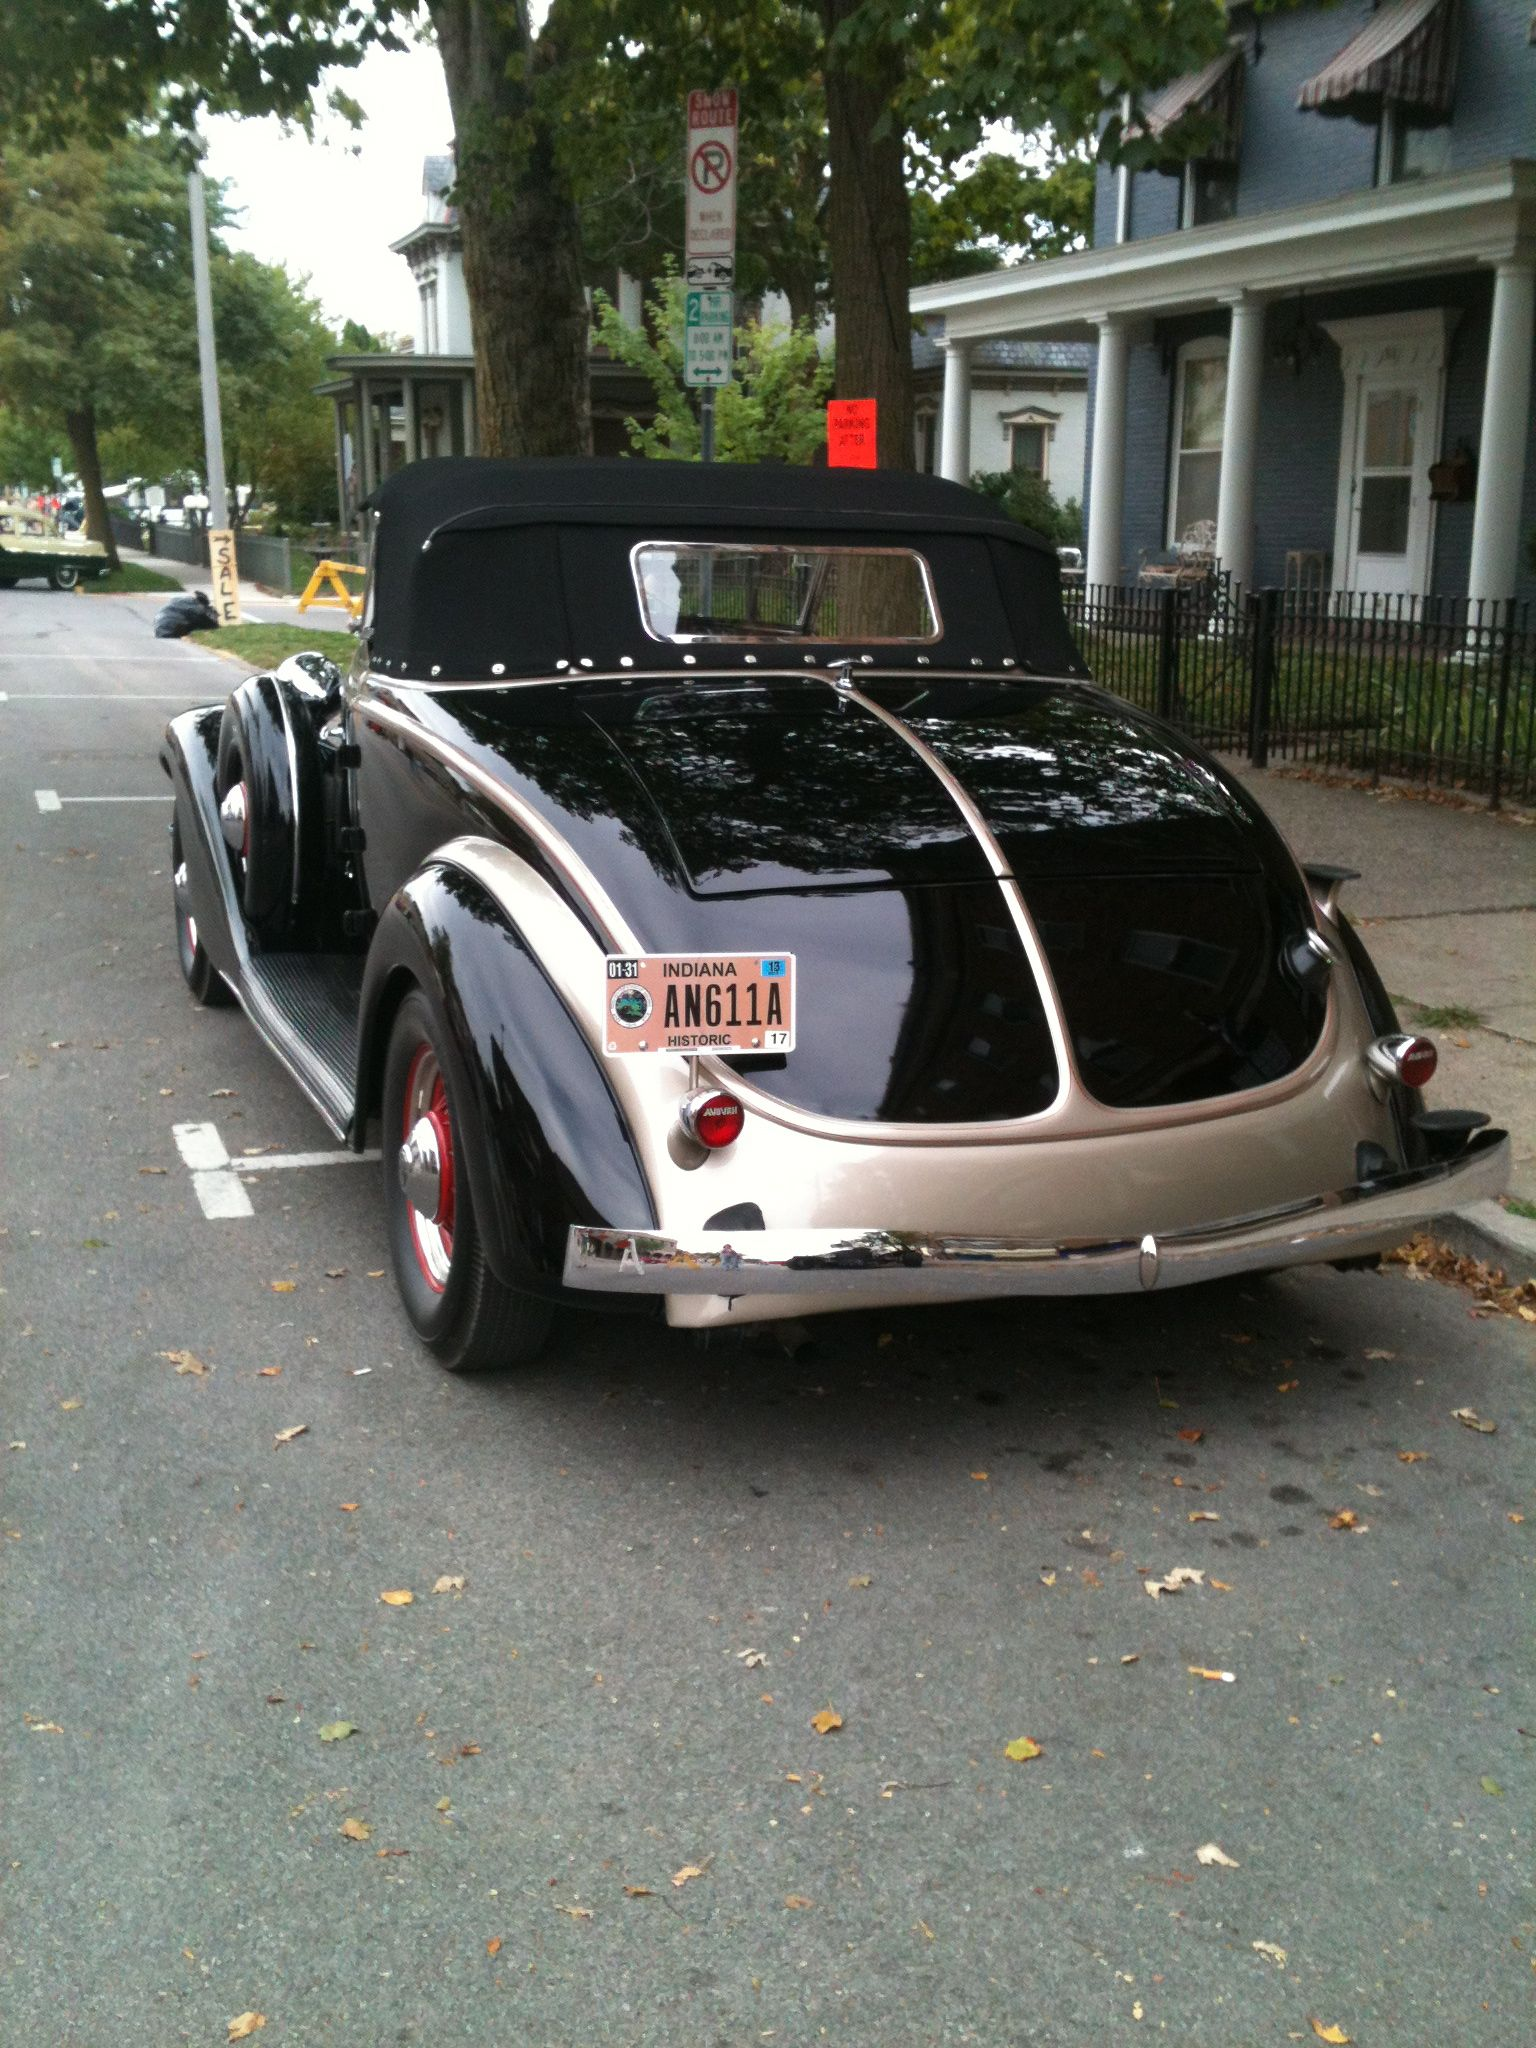 From car show in Auburn In. Black beauty. | Old Cars | Pinterest ...